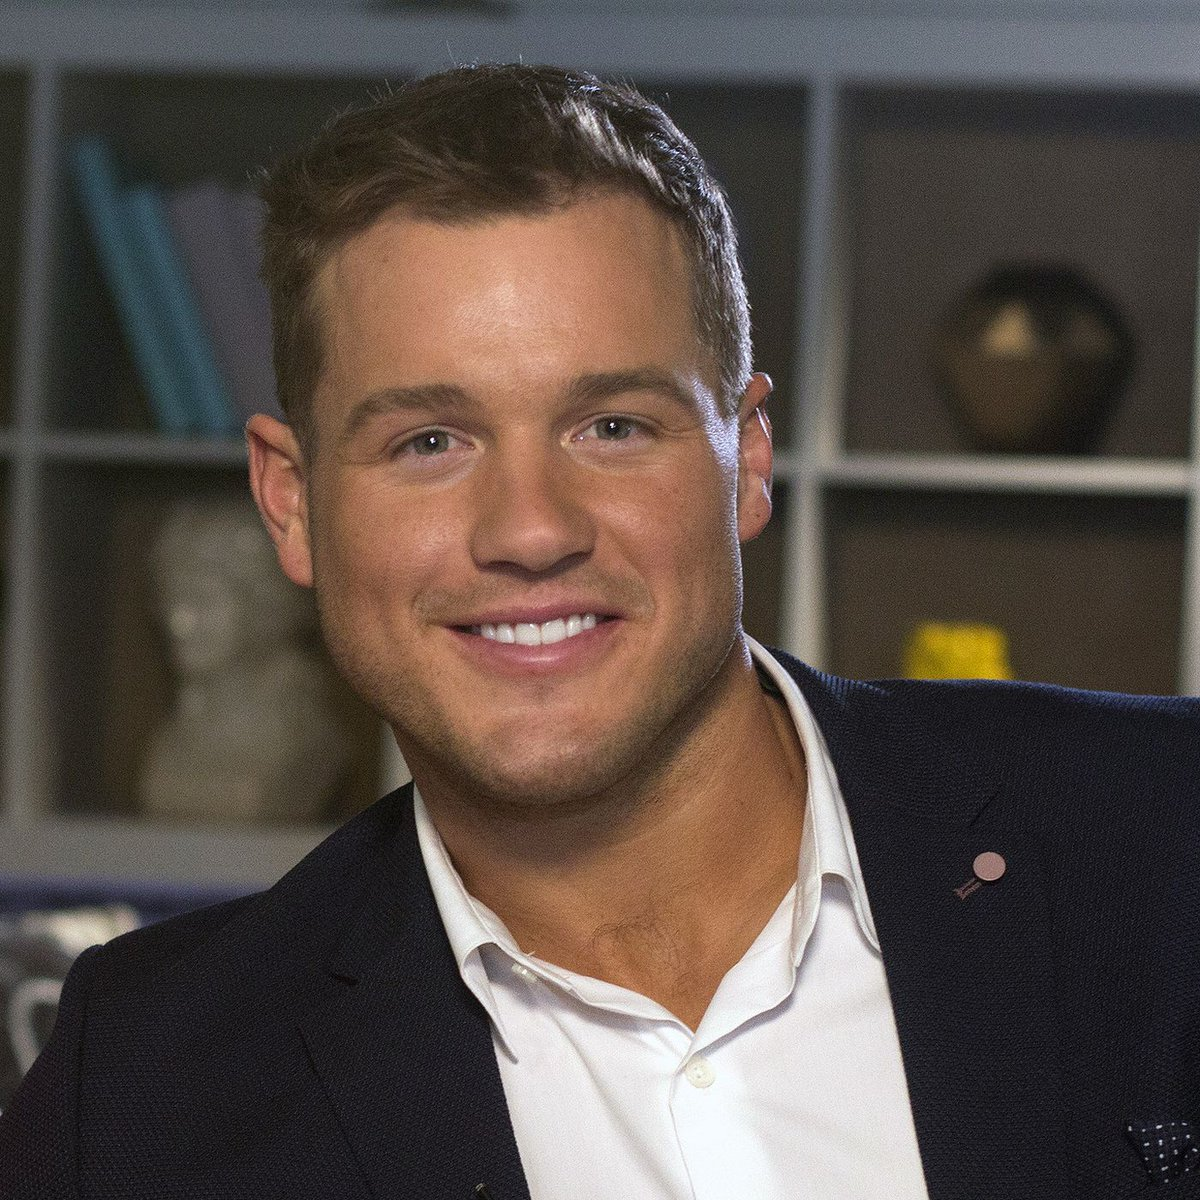 Happy Birthday also to @colton Underwood! May you have more birthdays to come. 🙂😊😀😁🙌📺🏈🏆💑💏👫💍🌹📙📖✒✍🌟🎂🎈🎁🎉🎊🍾❤ #ColtonUnderwood #NFL #TheBachelor #BachelorNation #HappyBirthday @NFL @BachelorABC @ABCNetwork